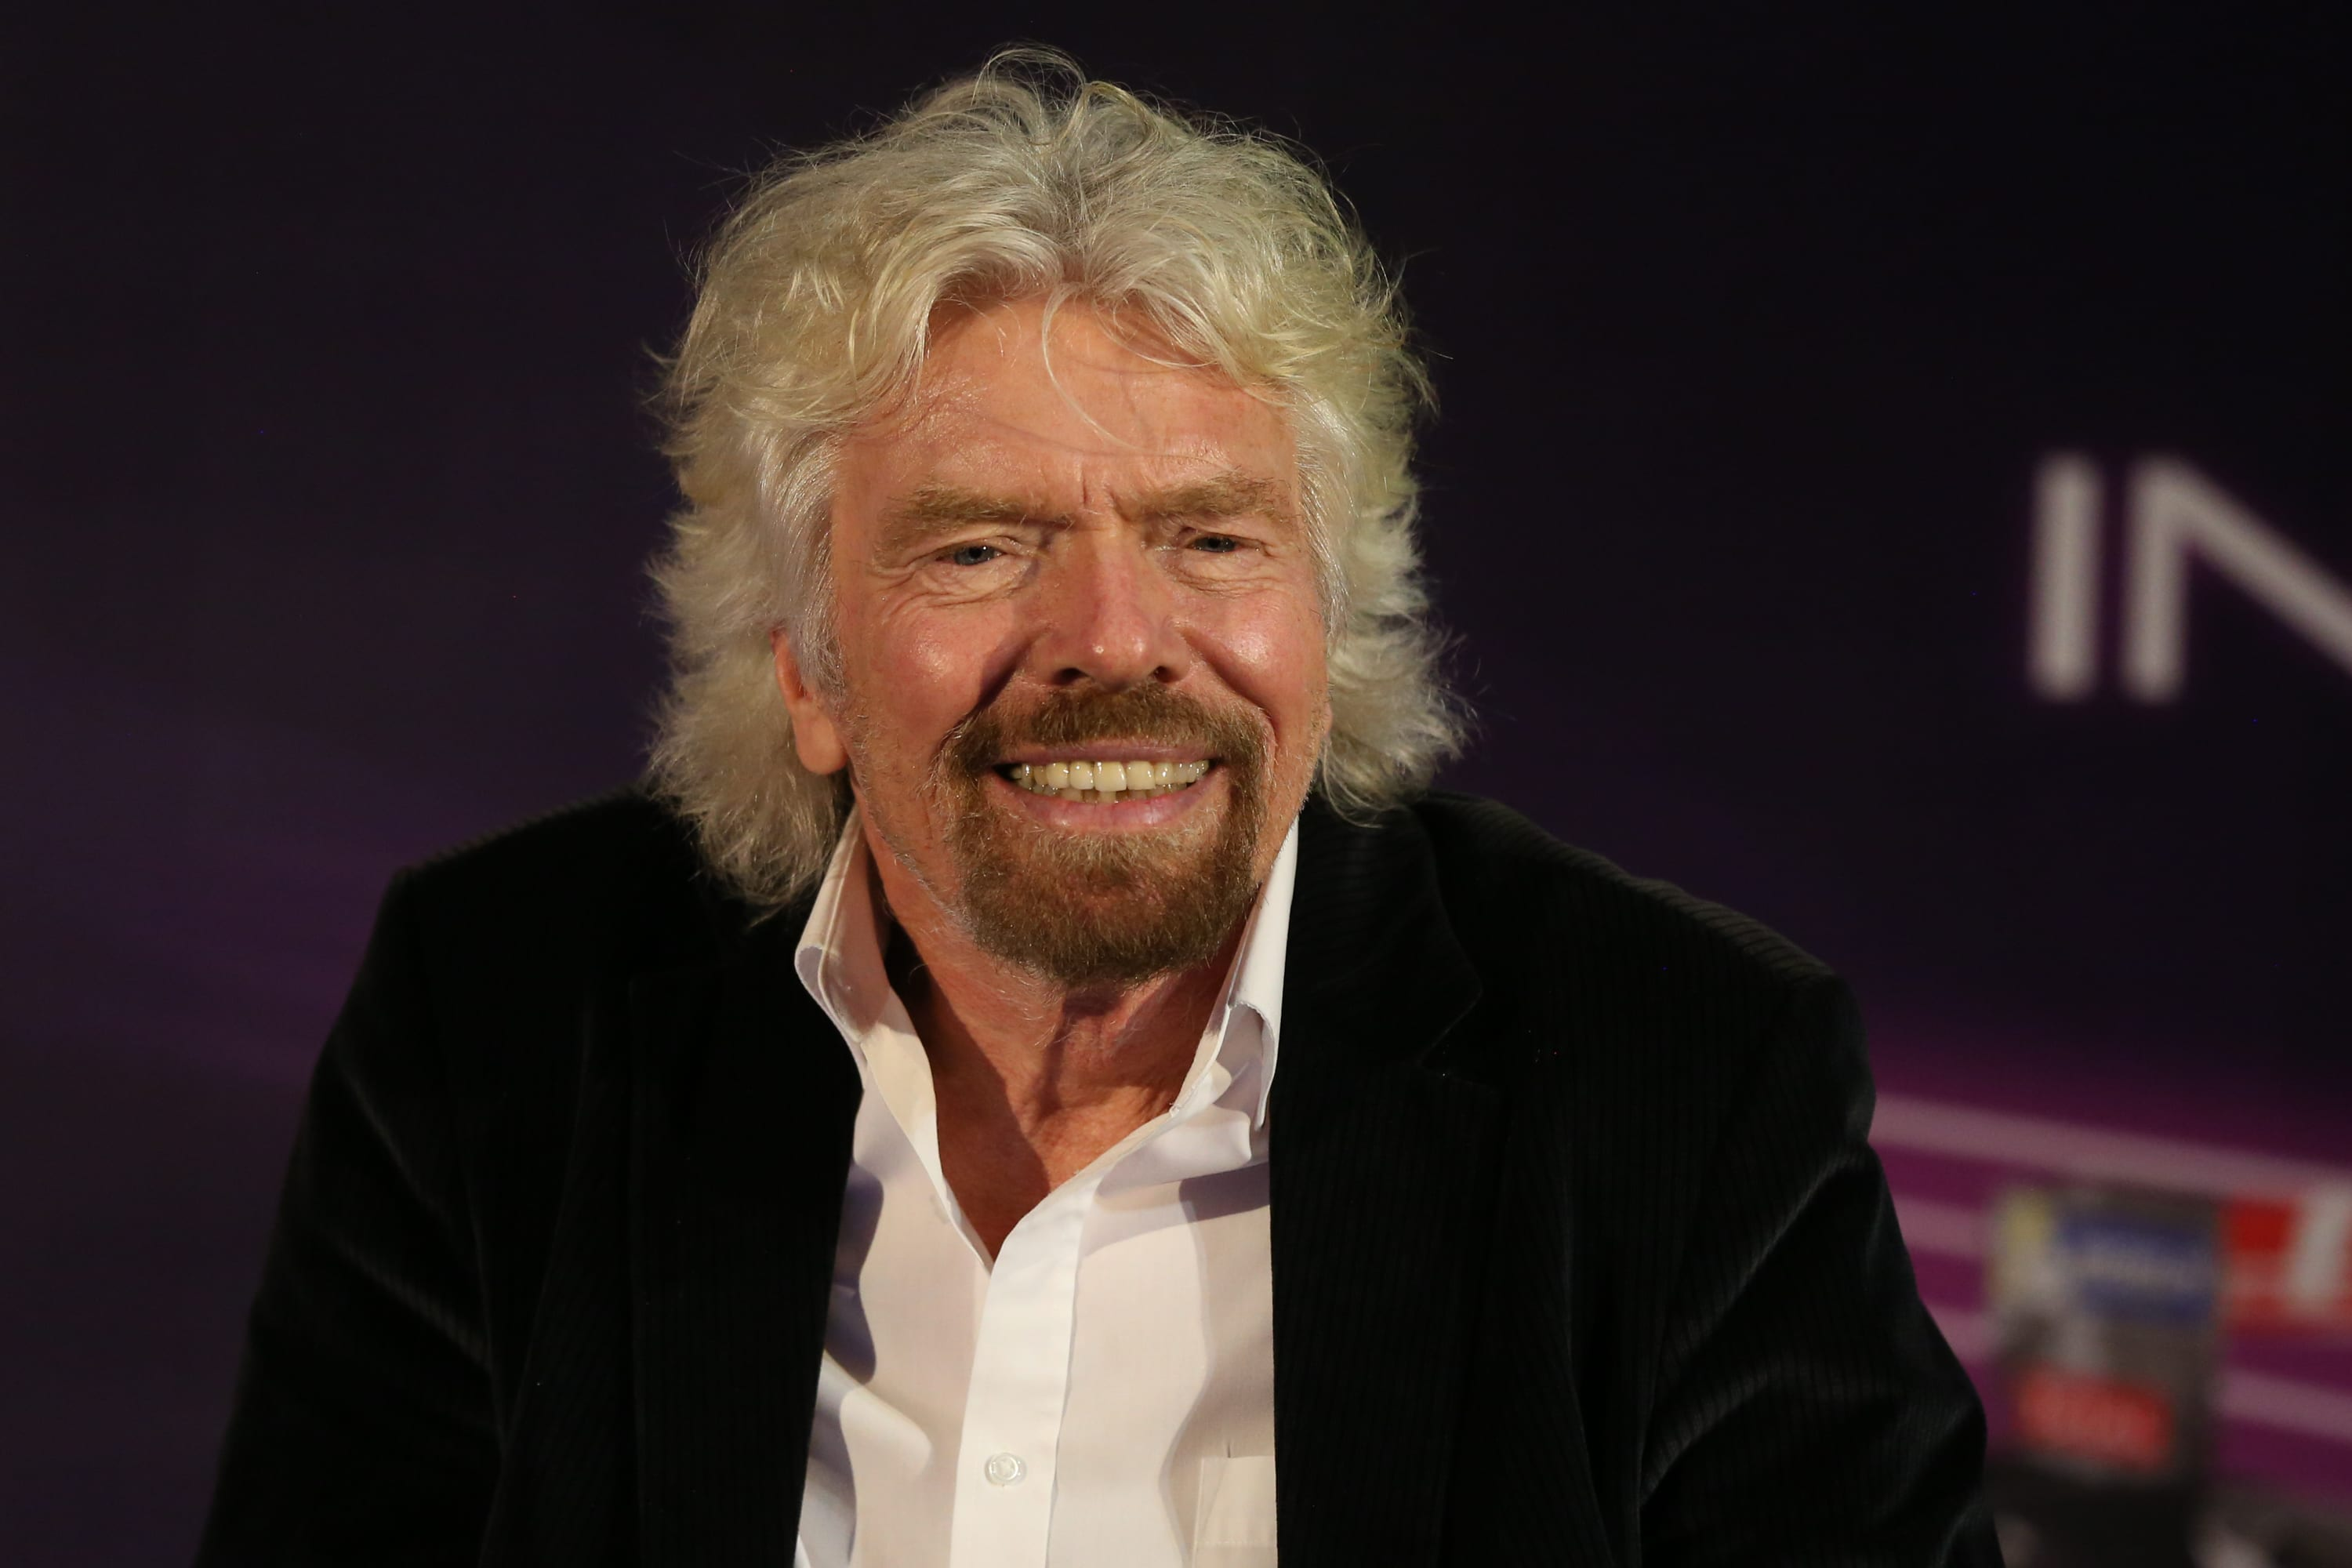 Richard Branson, Michelle Obama and other top leaders use this scheduling trick that could double your productivity